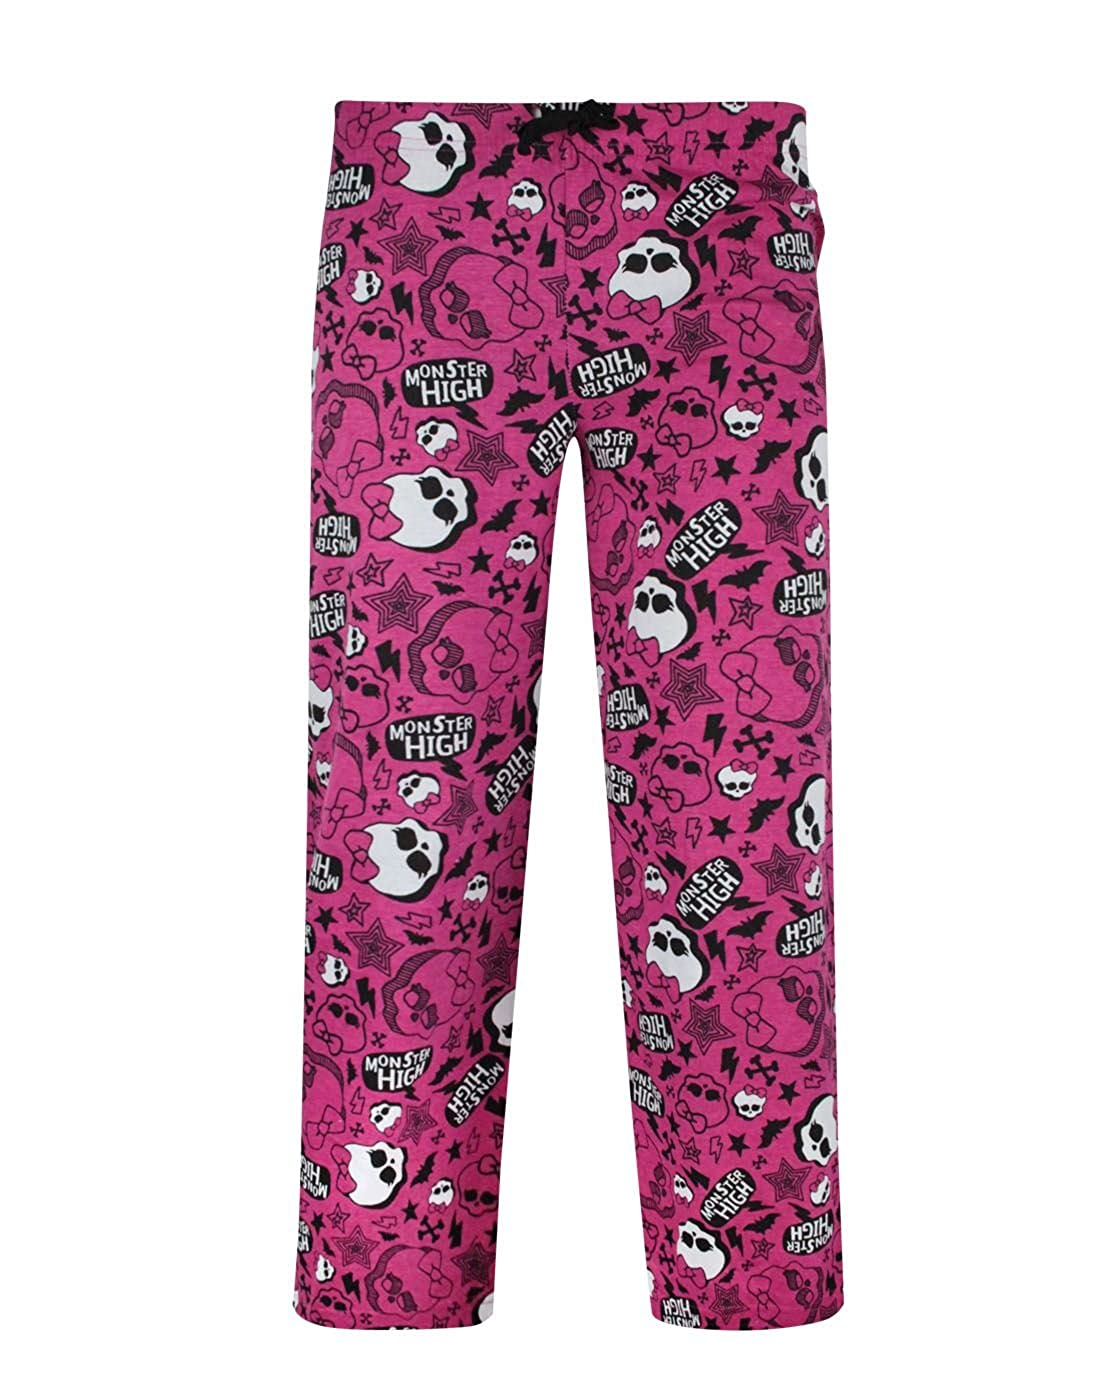 Official Monster High Girl's Loungepants